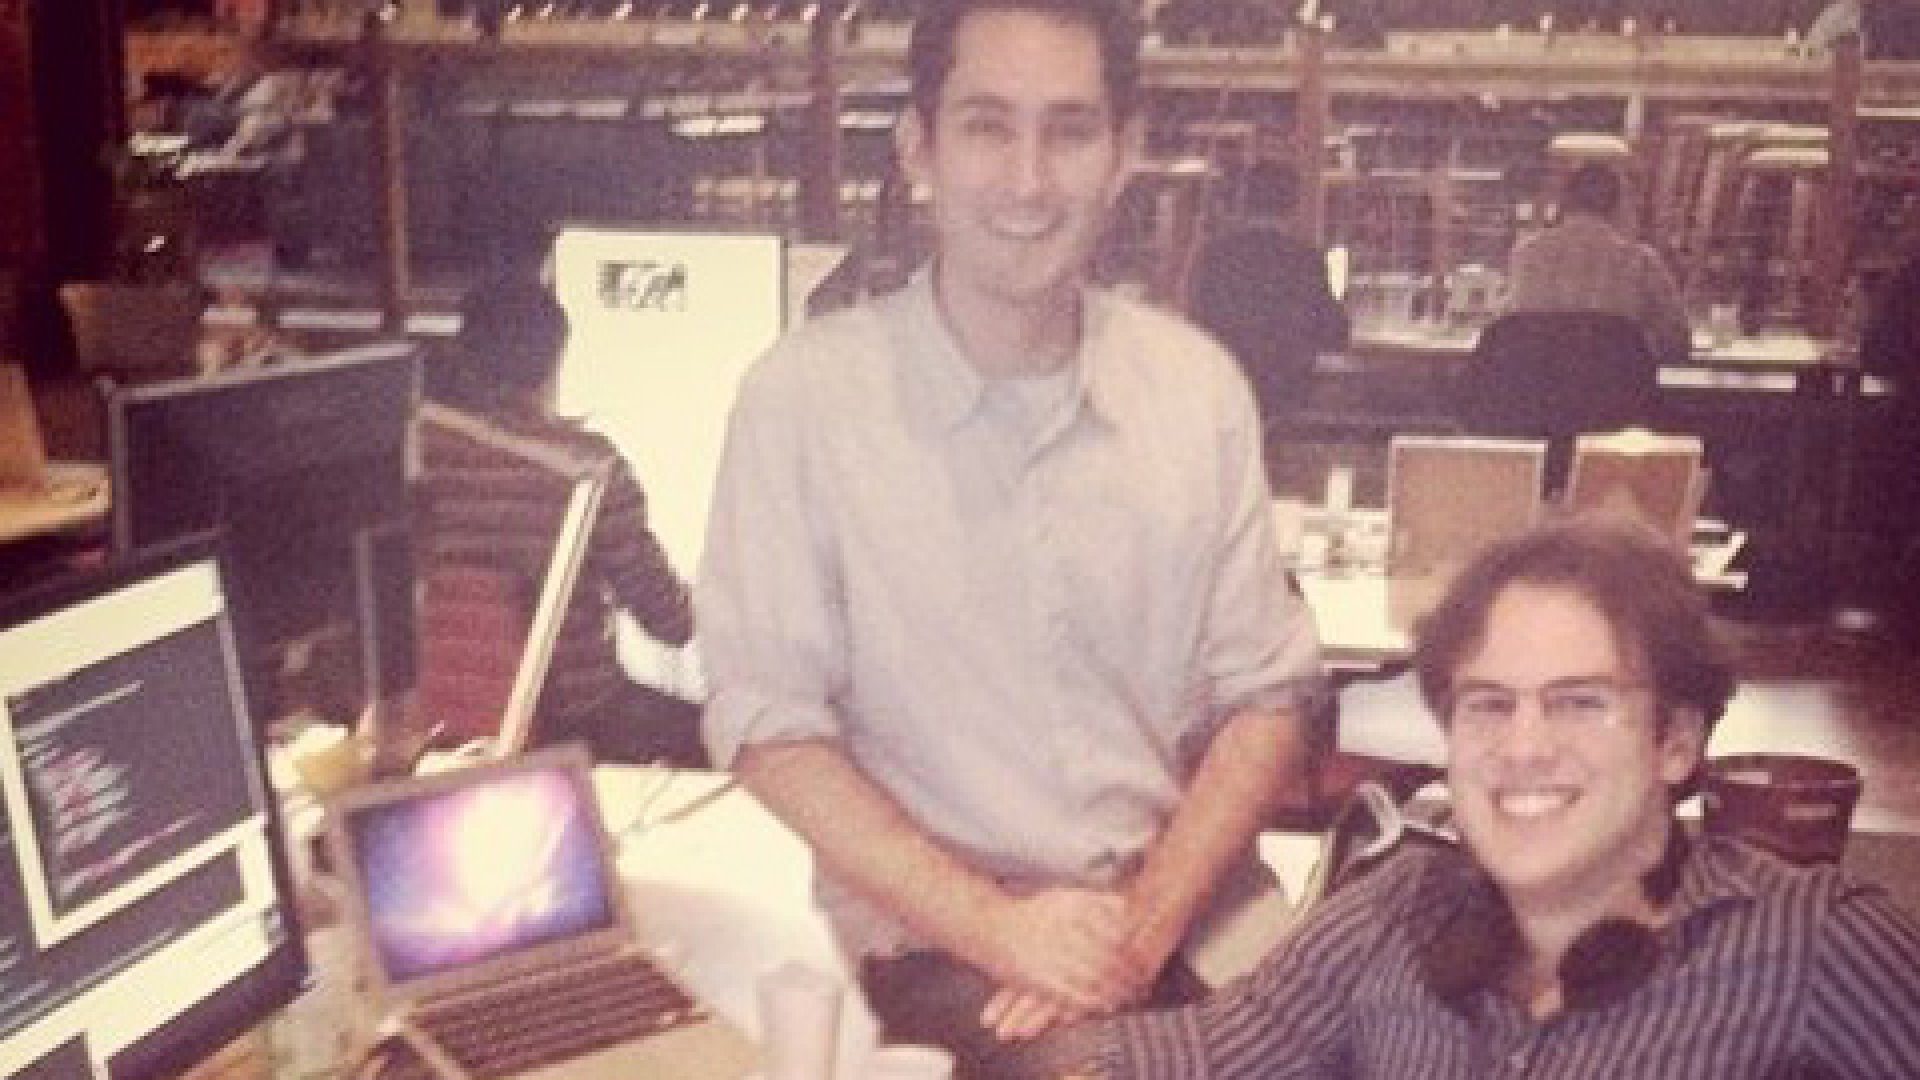 <strong>Portrait of the multi-millionaires as young men:</strong> Blogger and tech evangelist Robert Scoble snapped this Instagrammed shot of Instagram founders Kevin Systrom (left) and Mike Krieger back in November of 2010, when they were building their photo-sharing app out of a $500-a-month desk rented from Dogpatch Labs on Pier 38, which was so structurally unsound San Francisco forced tenants to vacate within a year.